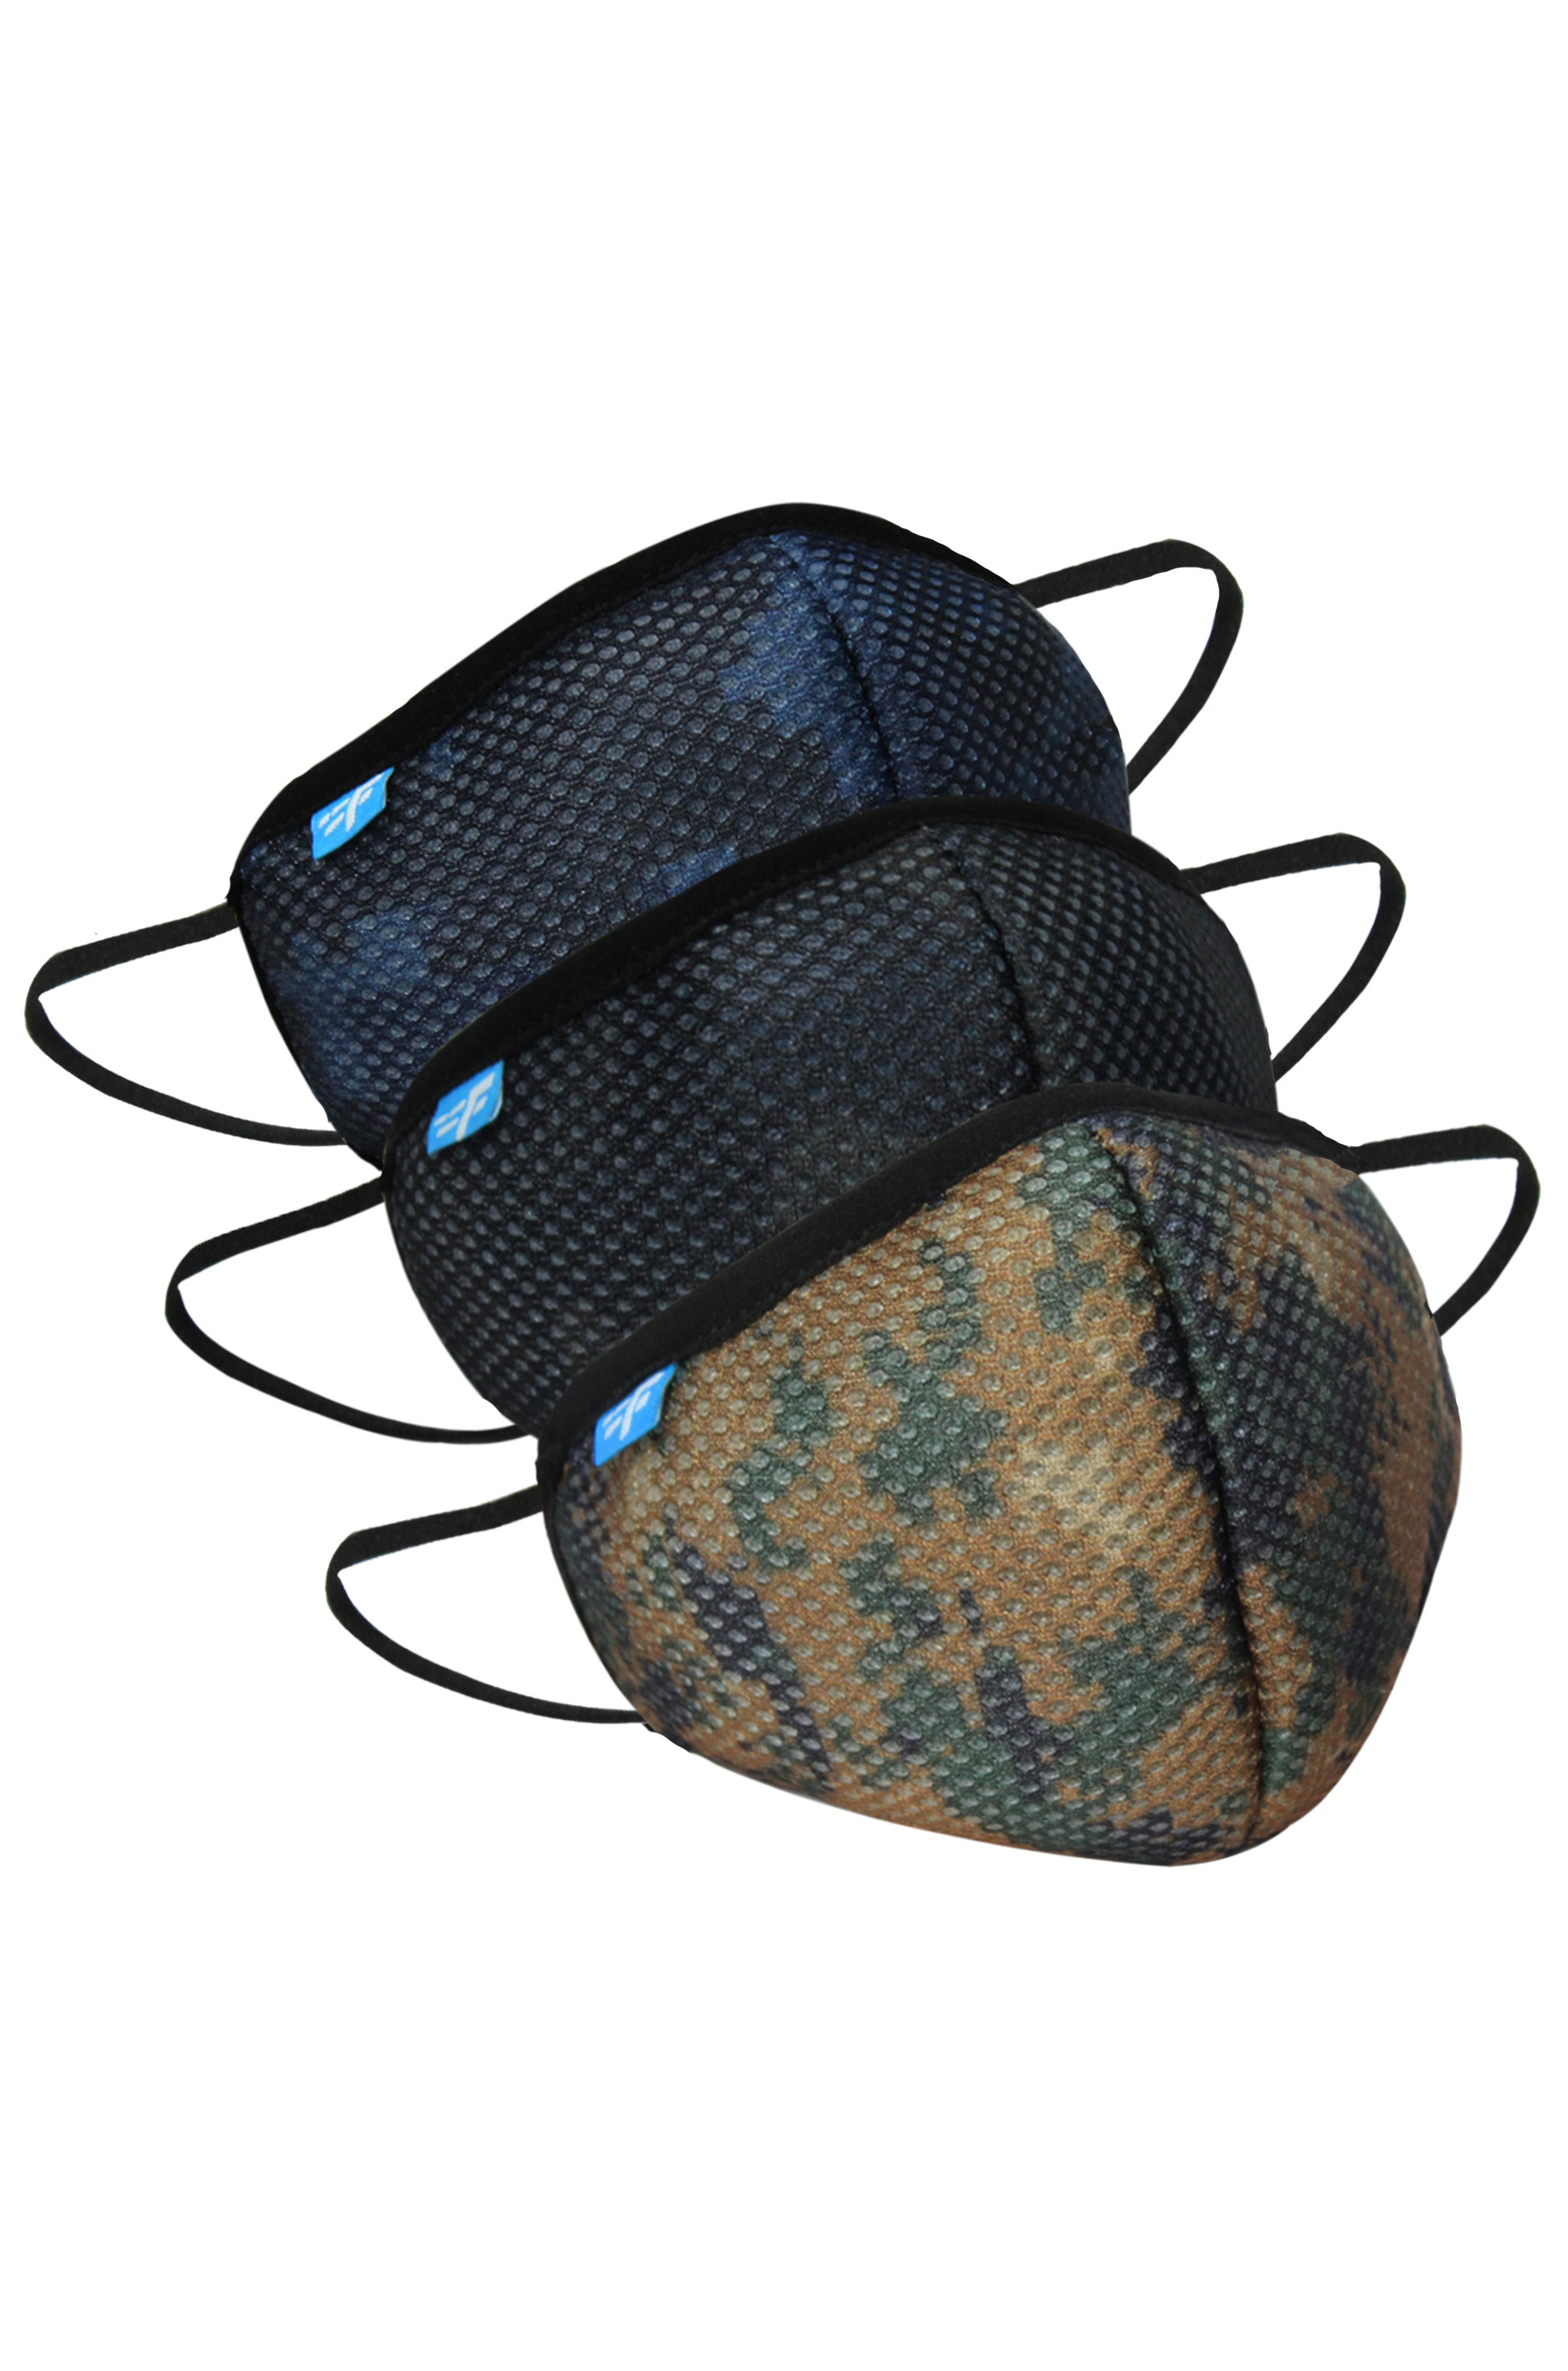 F Gear Safeguard F95 Mask Camo Black- Blue-Khaki 7 layer ISO CE SITRA lab certified >95% Bacteria Filtration PACK-3